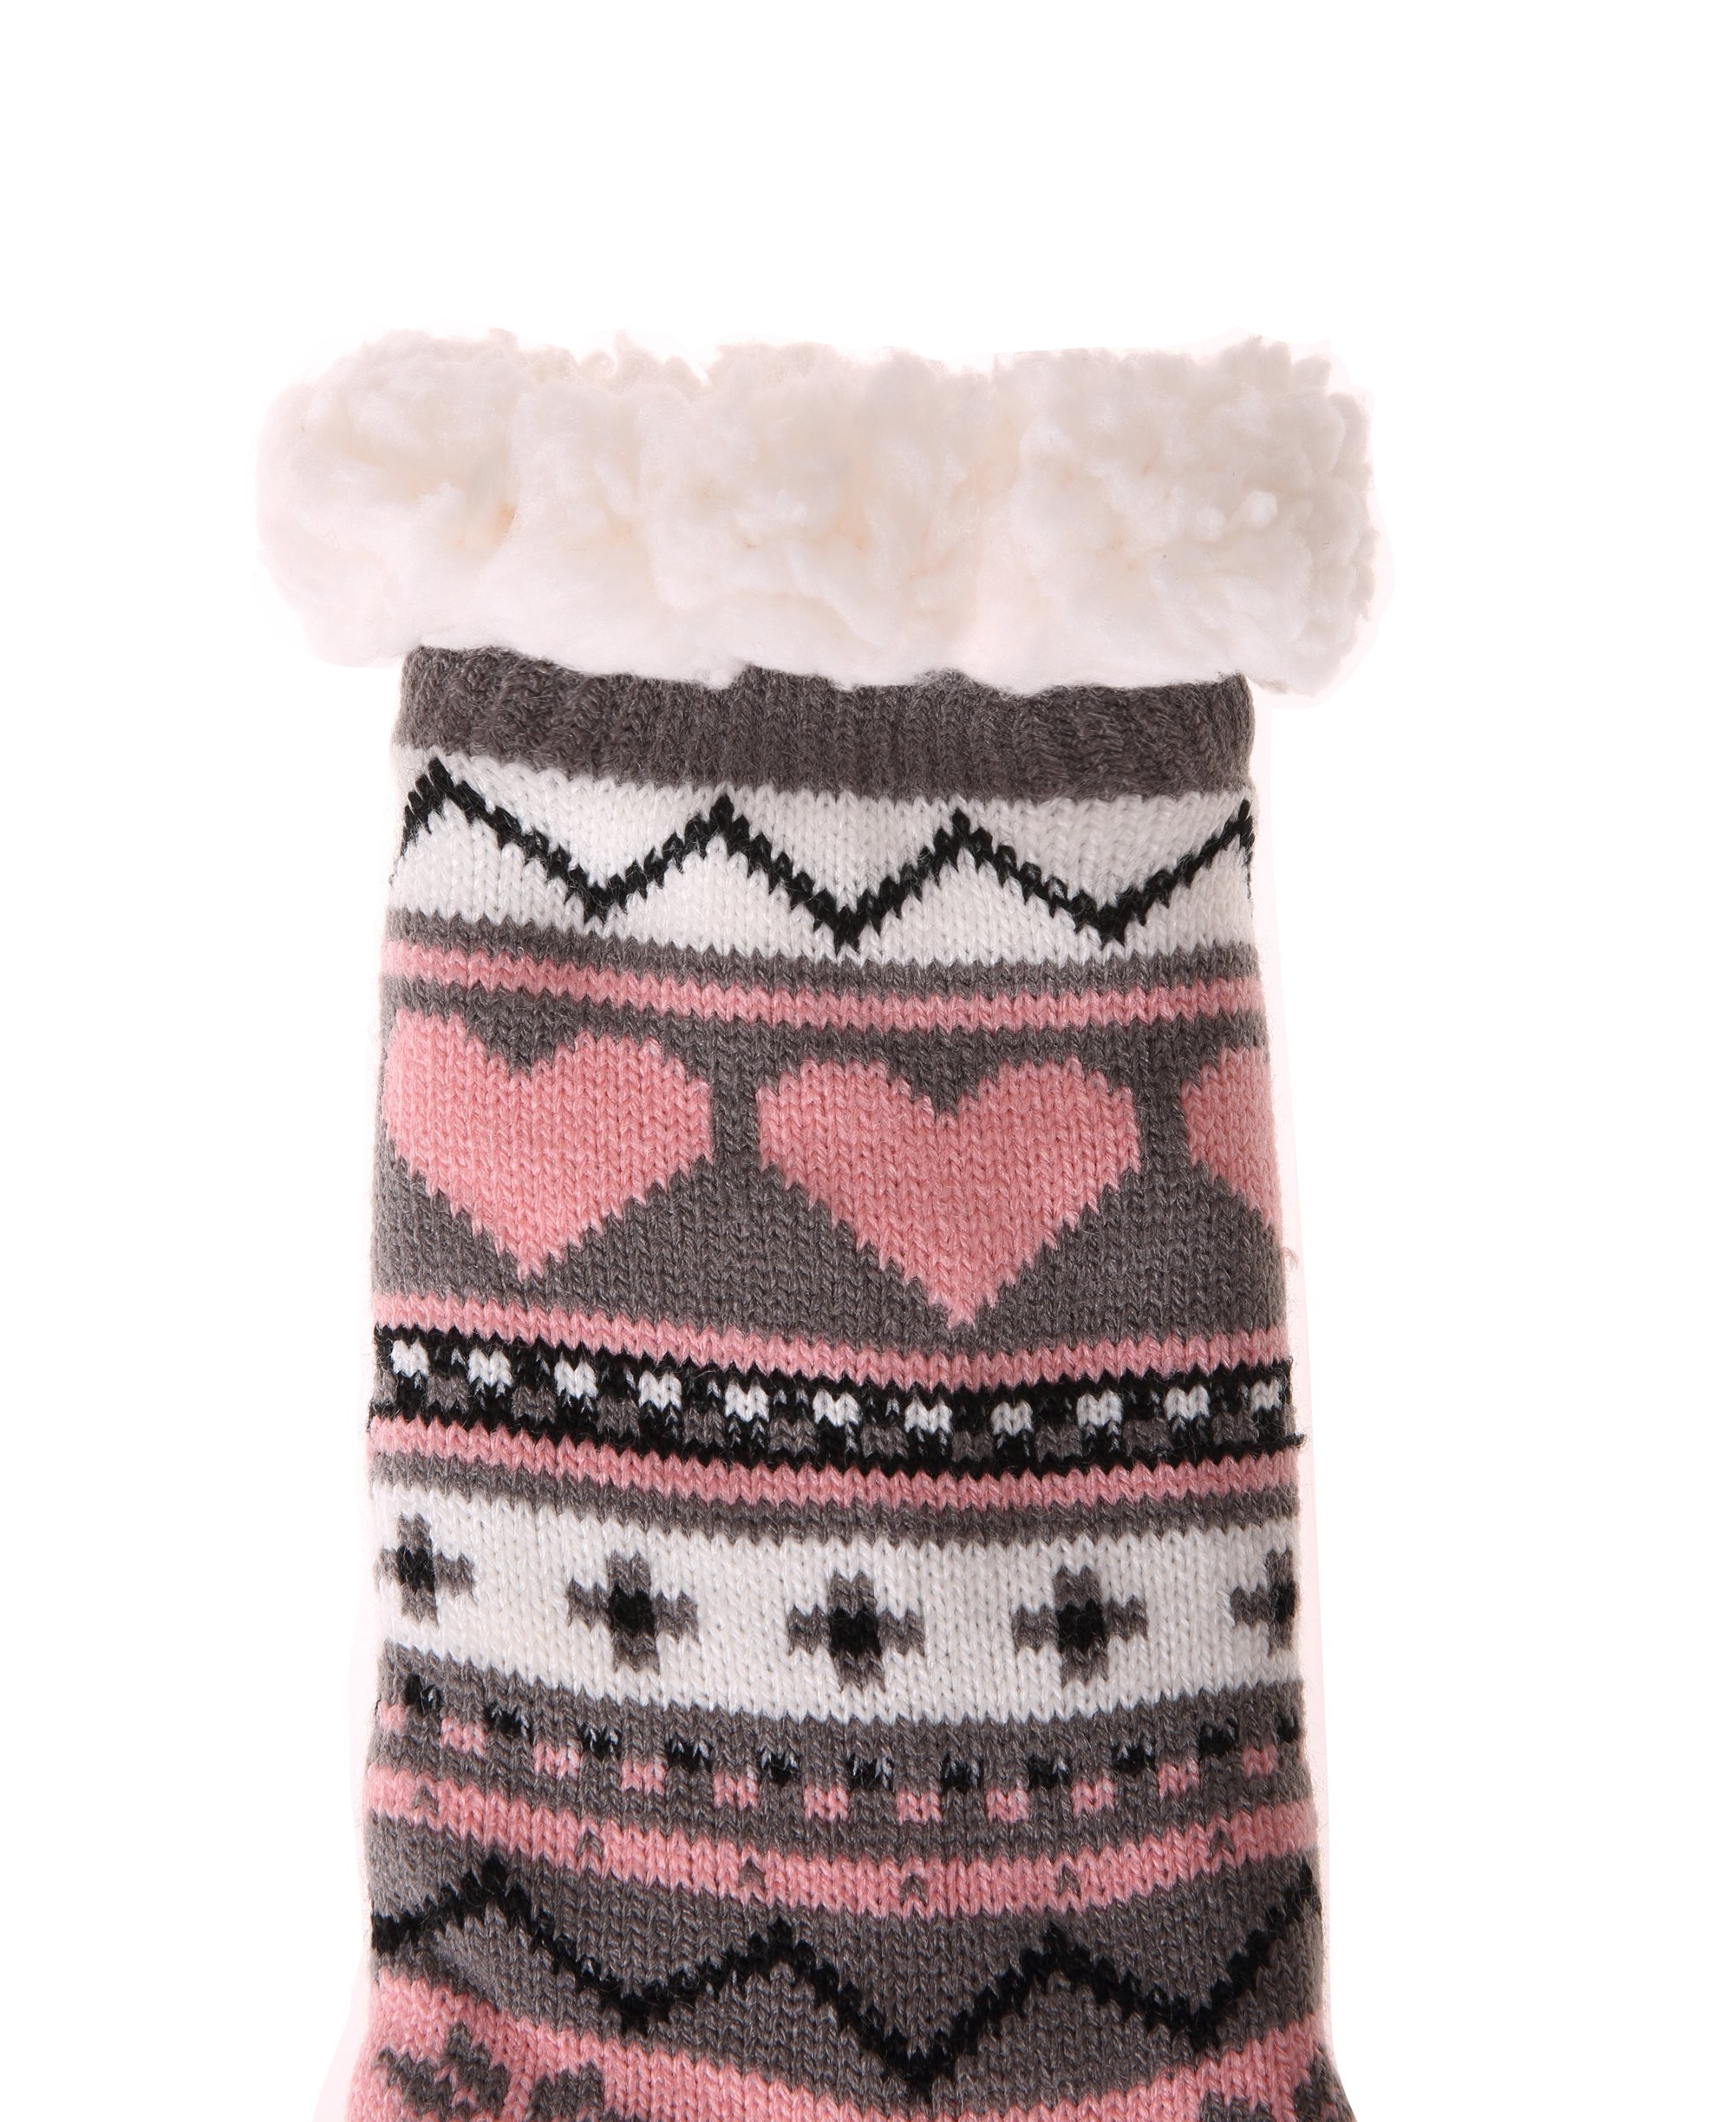 Dosoni-Womens-Winter-Snowflake-Fleece-Lining-Knit-Christmas-Knee-Highs-Stockings-Slipper-Socks